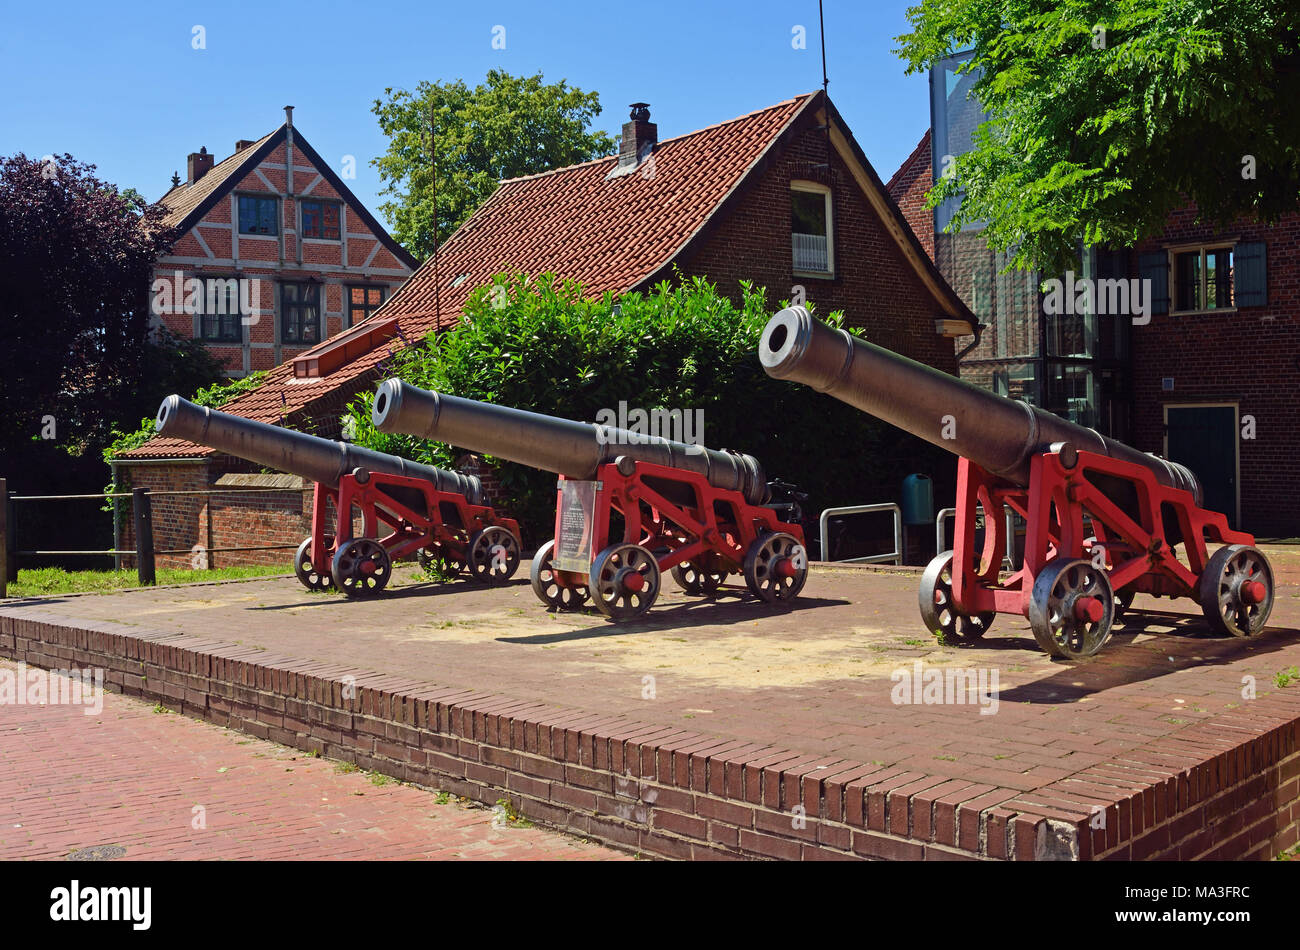 Europe, Germany, Lower Saxony, Hanseatic Town of Stade, Old Town, 18th century alarm guns at the Schwedenspeicher (warehouse), flood alert, - Stock Image